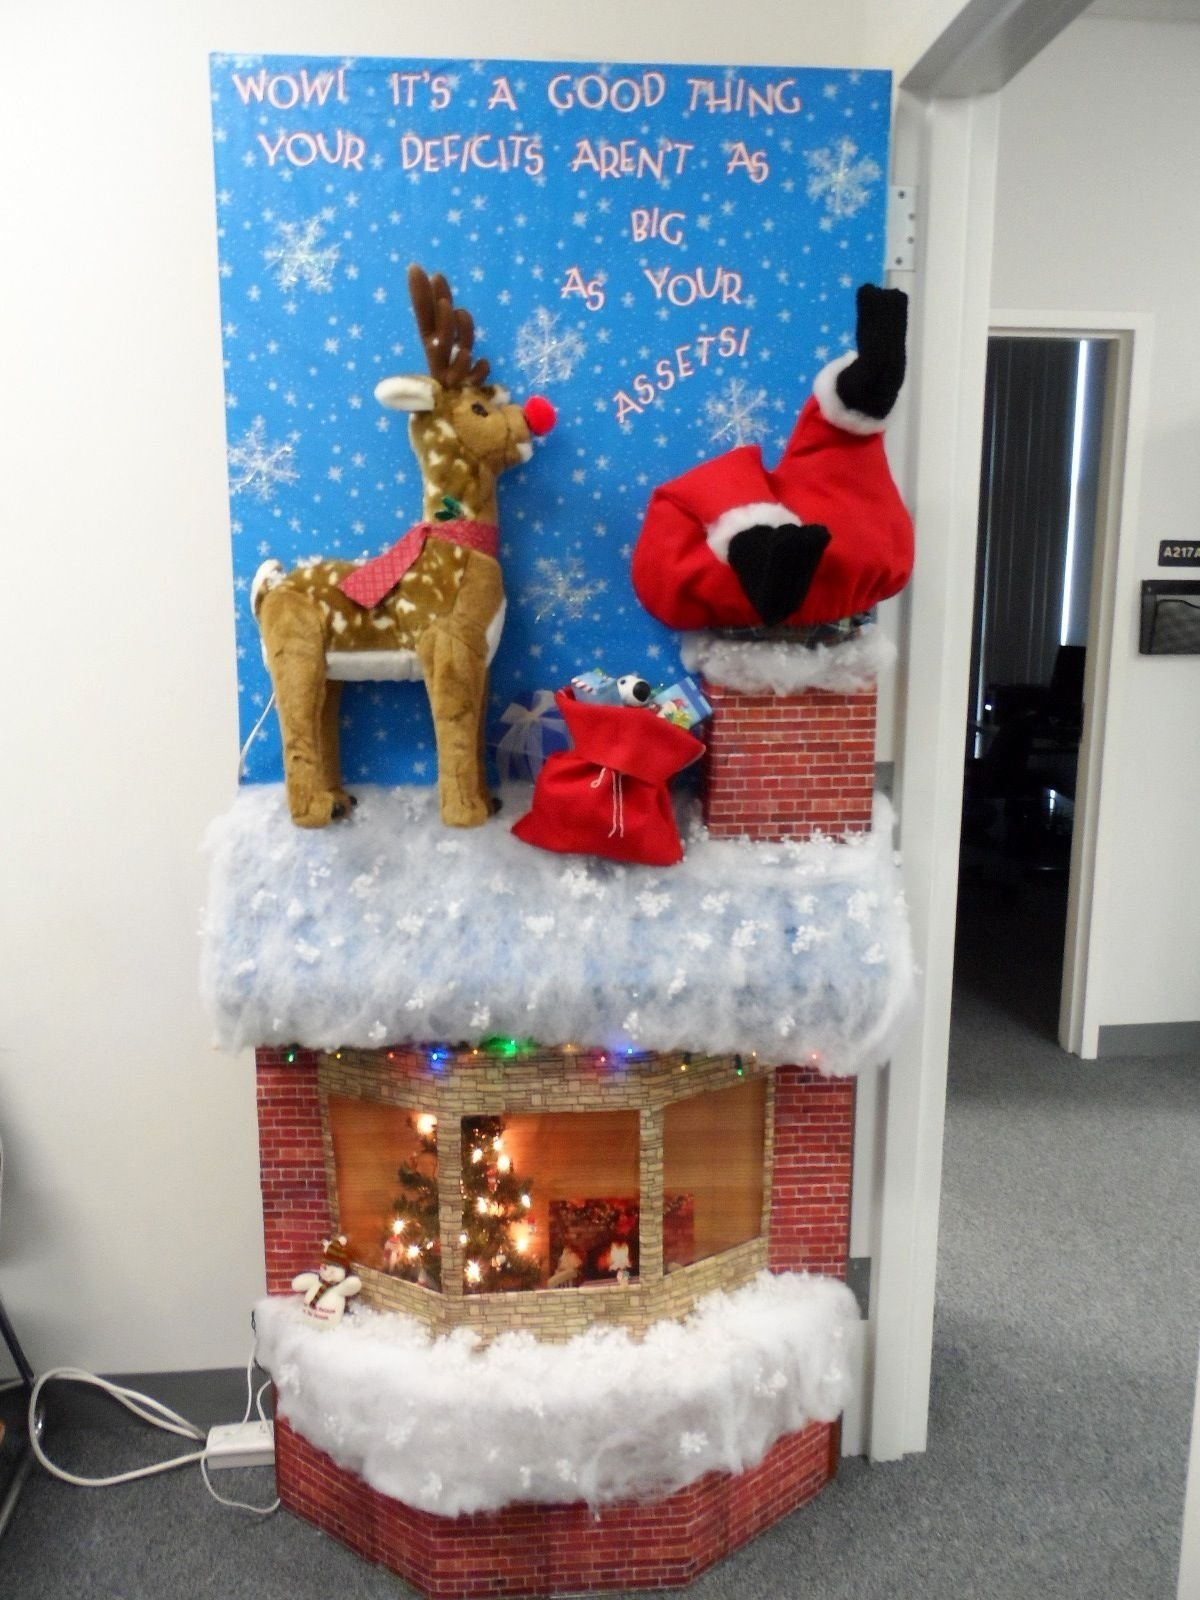 10 Amazing Funny Christmas Door Decorating Contest Ideas christmas office door decorations door decorating contest for 2021